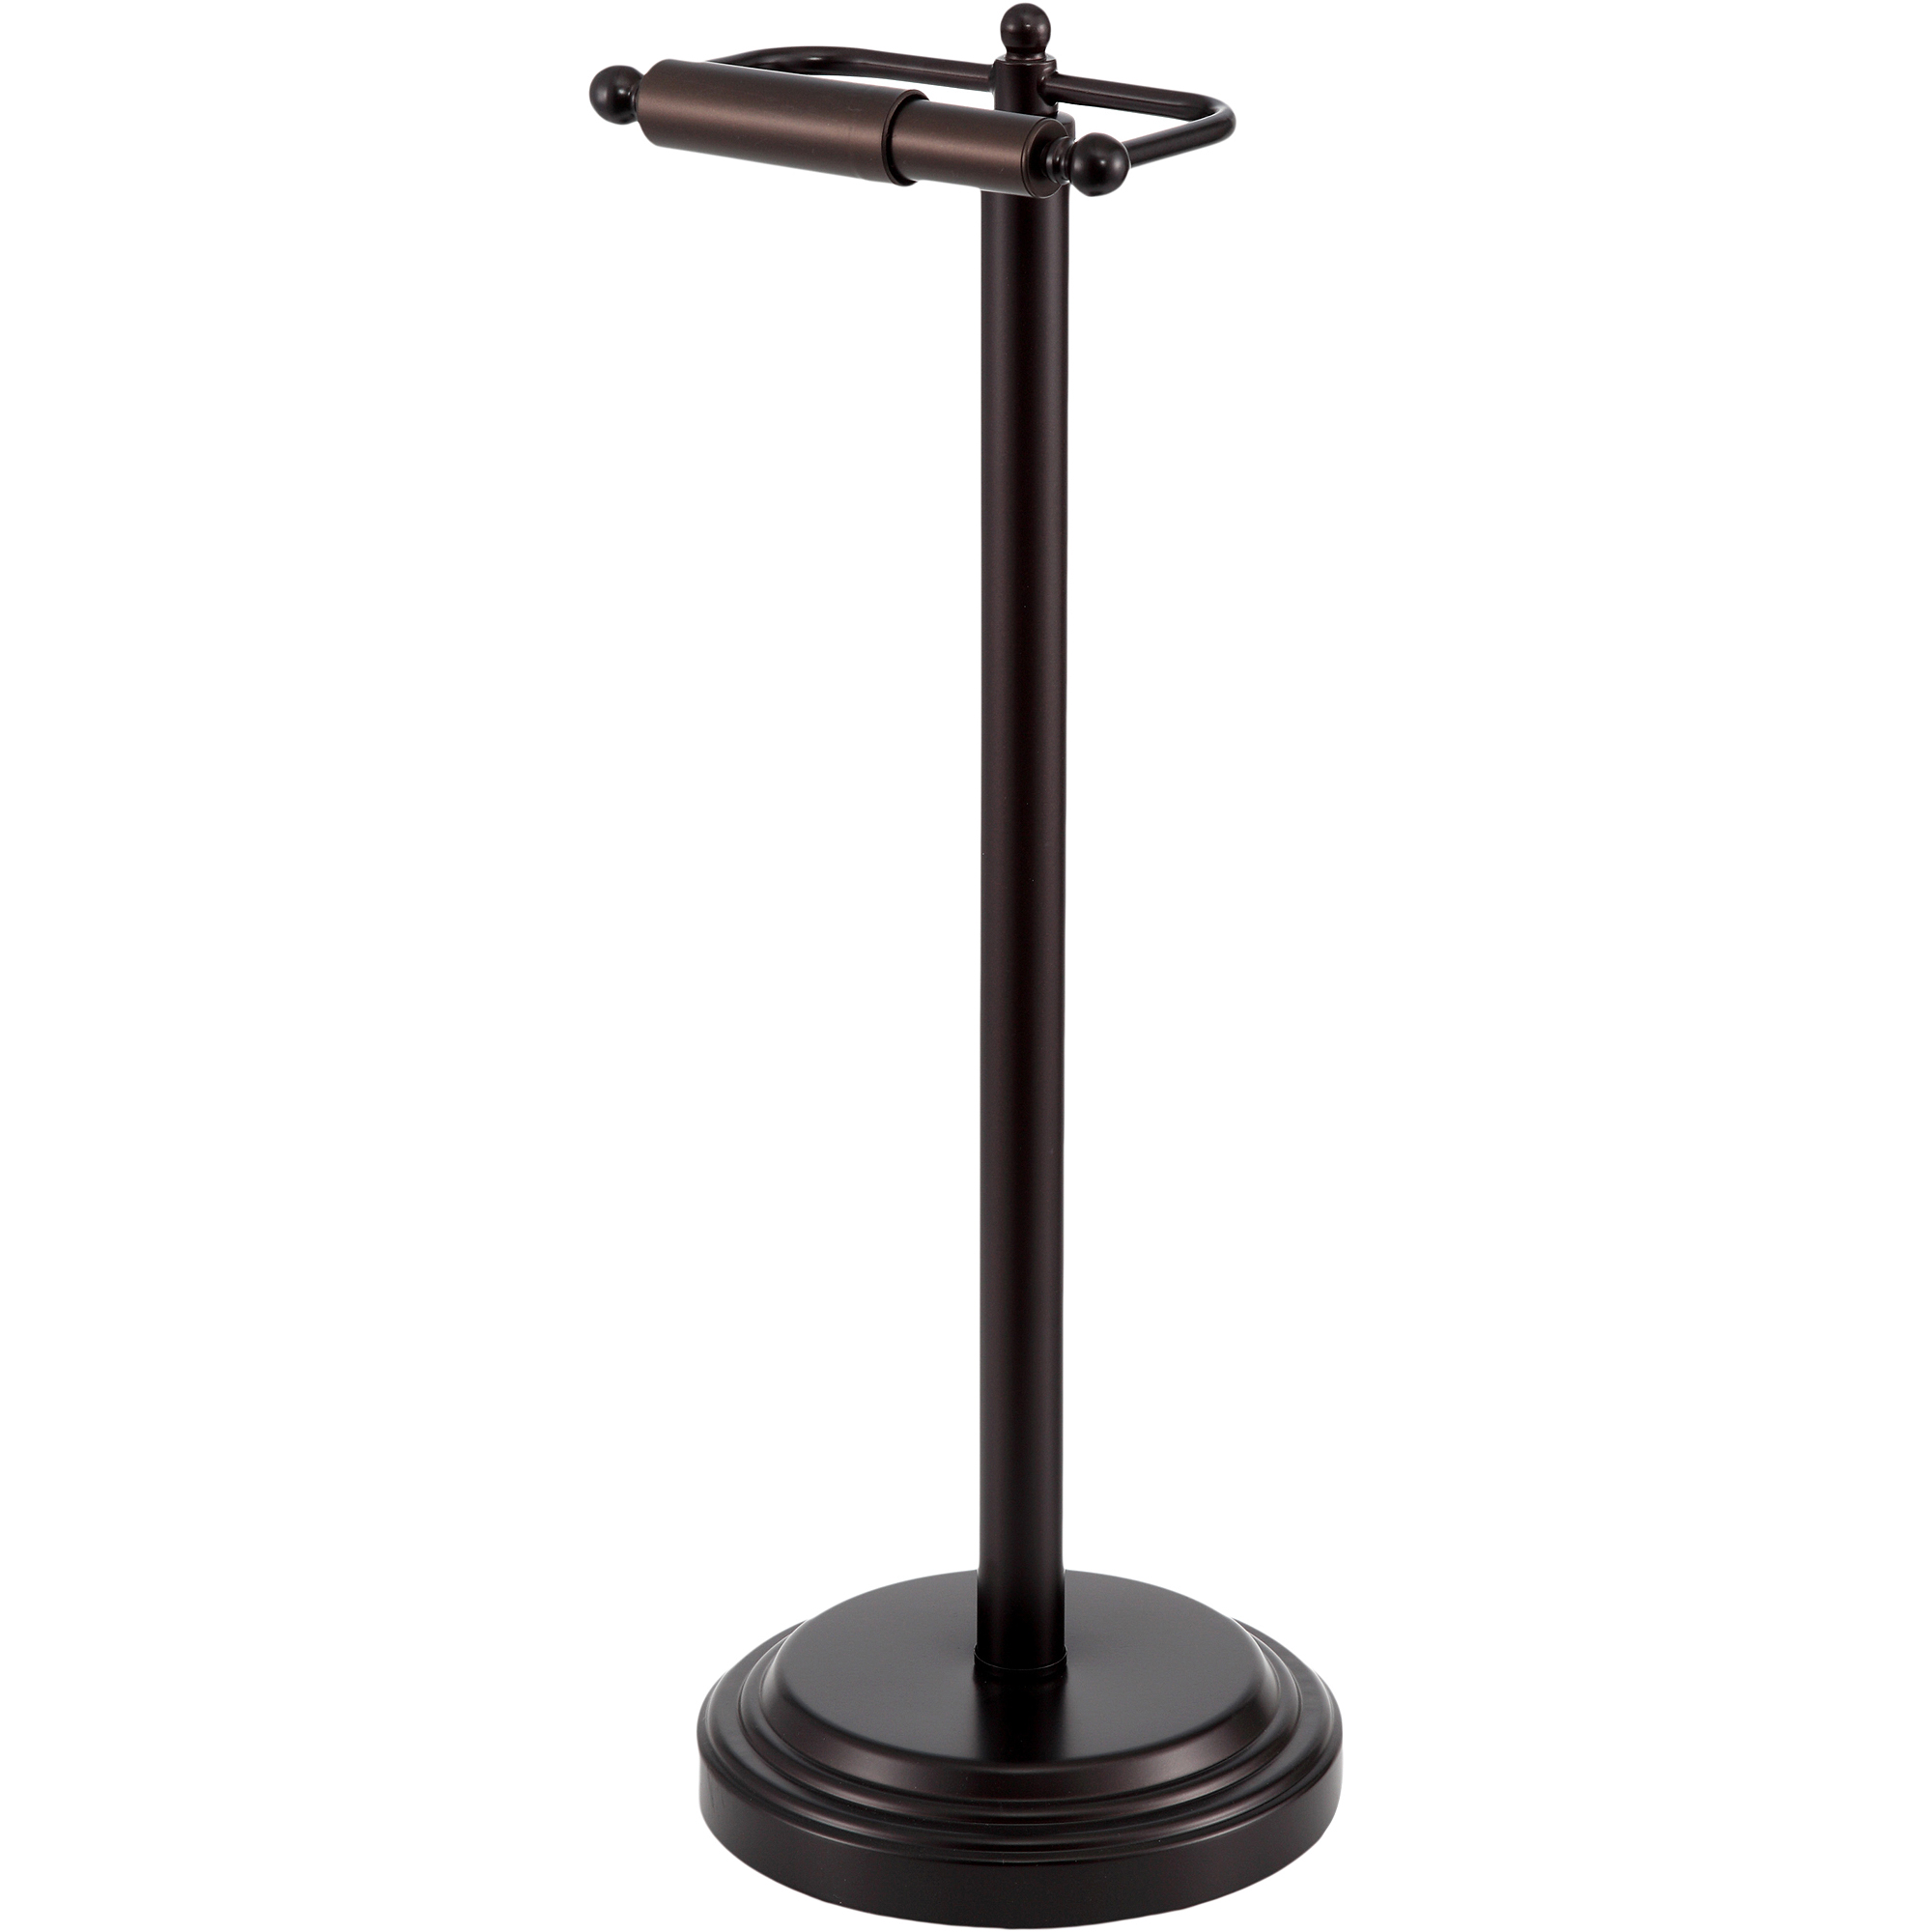 Paper Holder Stand Toilet Paper Stand Holder Oiled Bronze For Bathroom